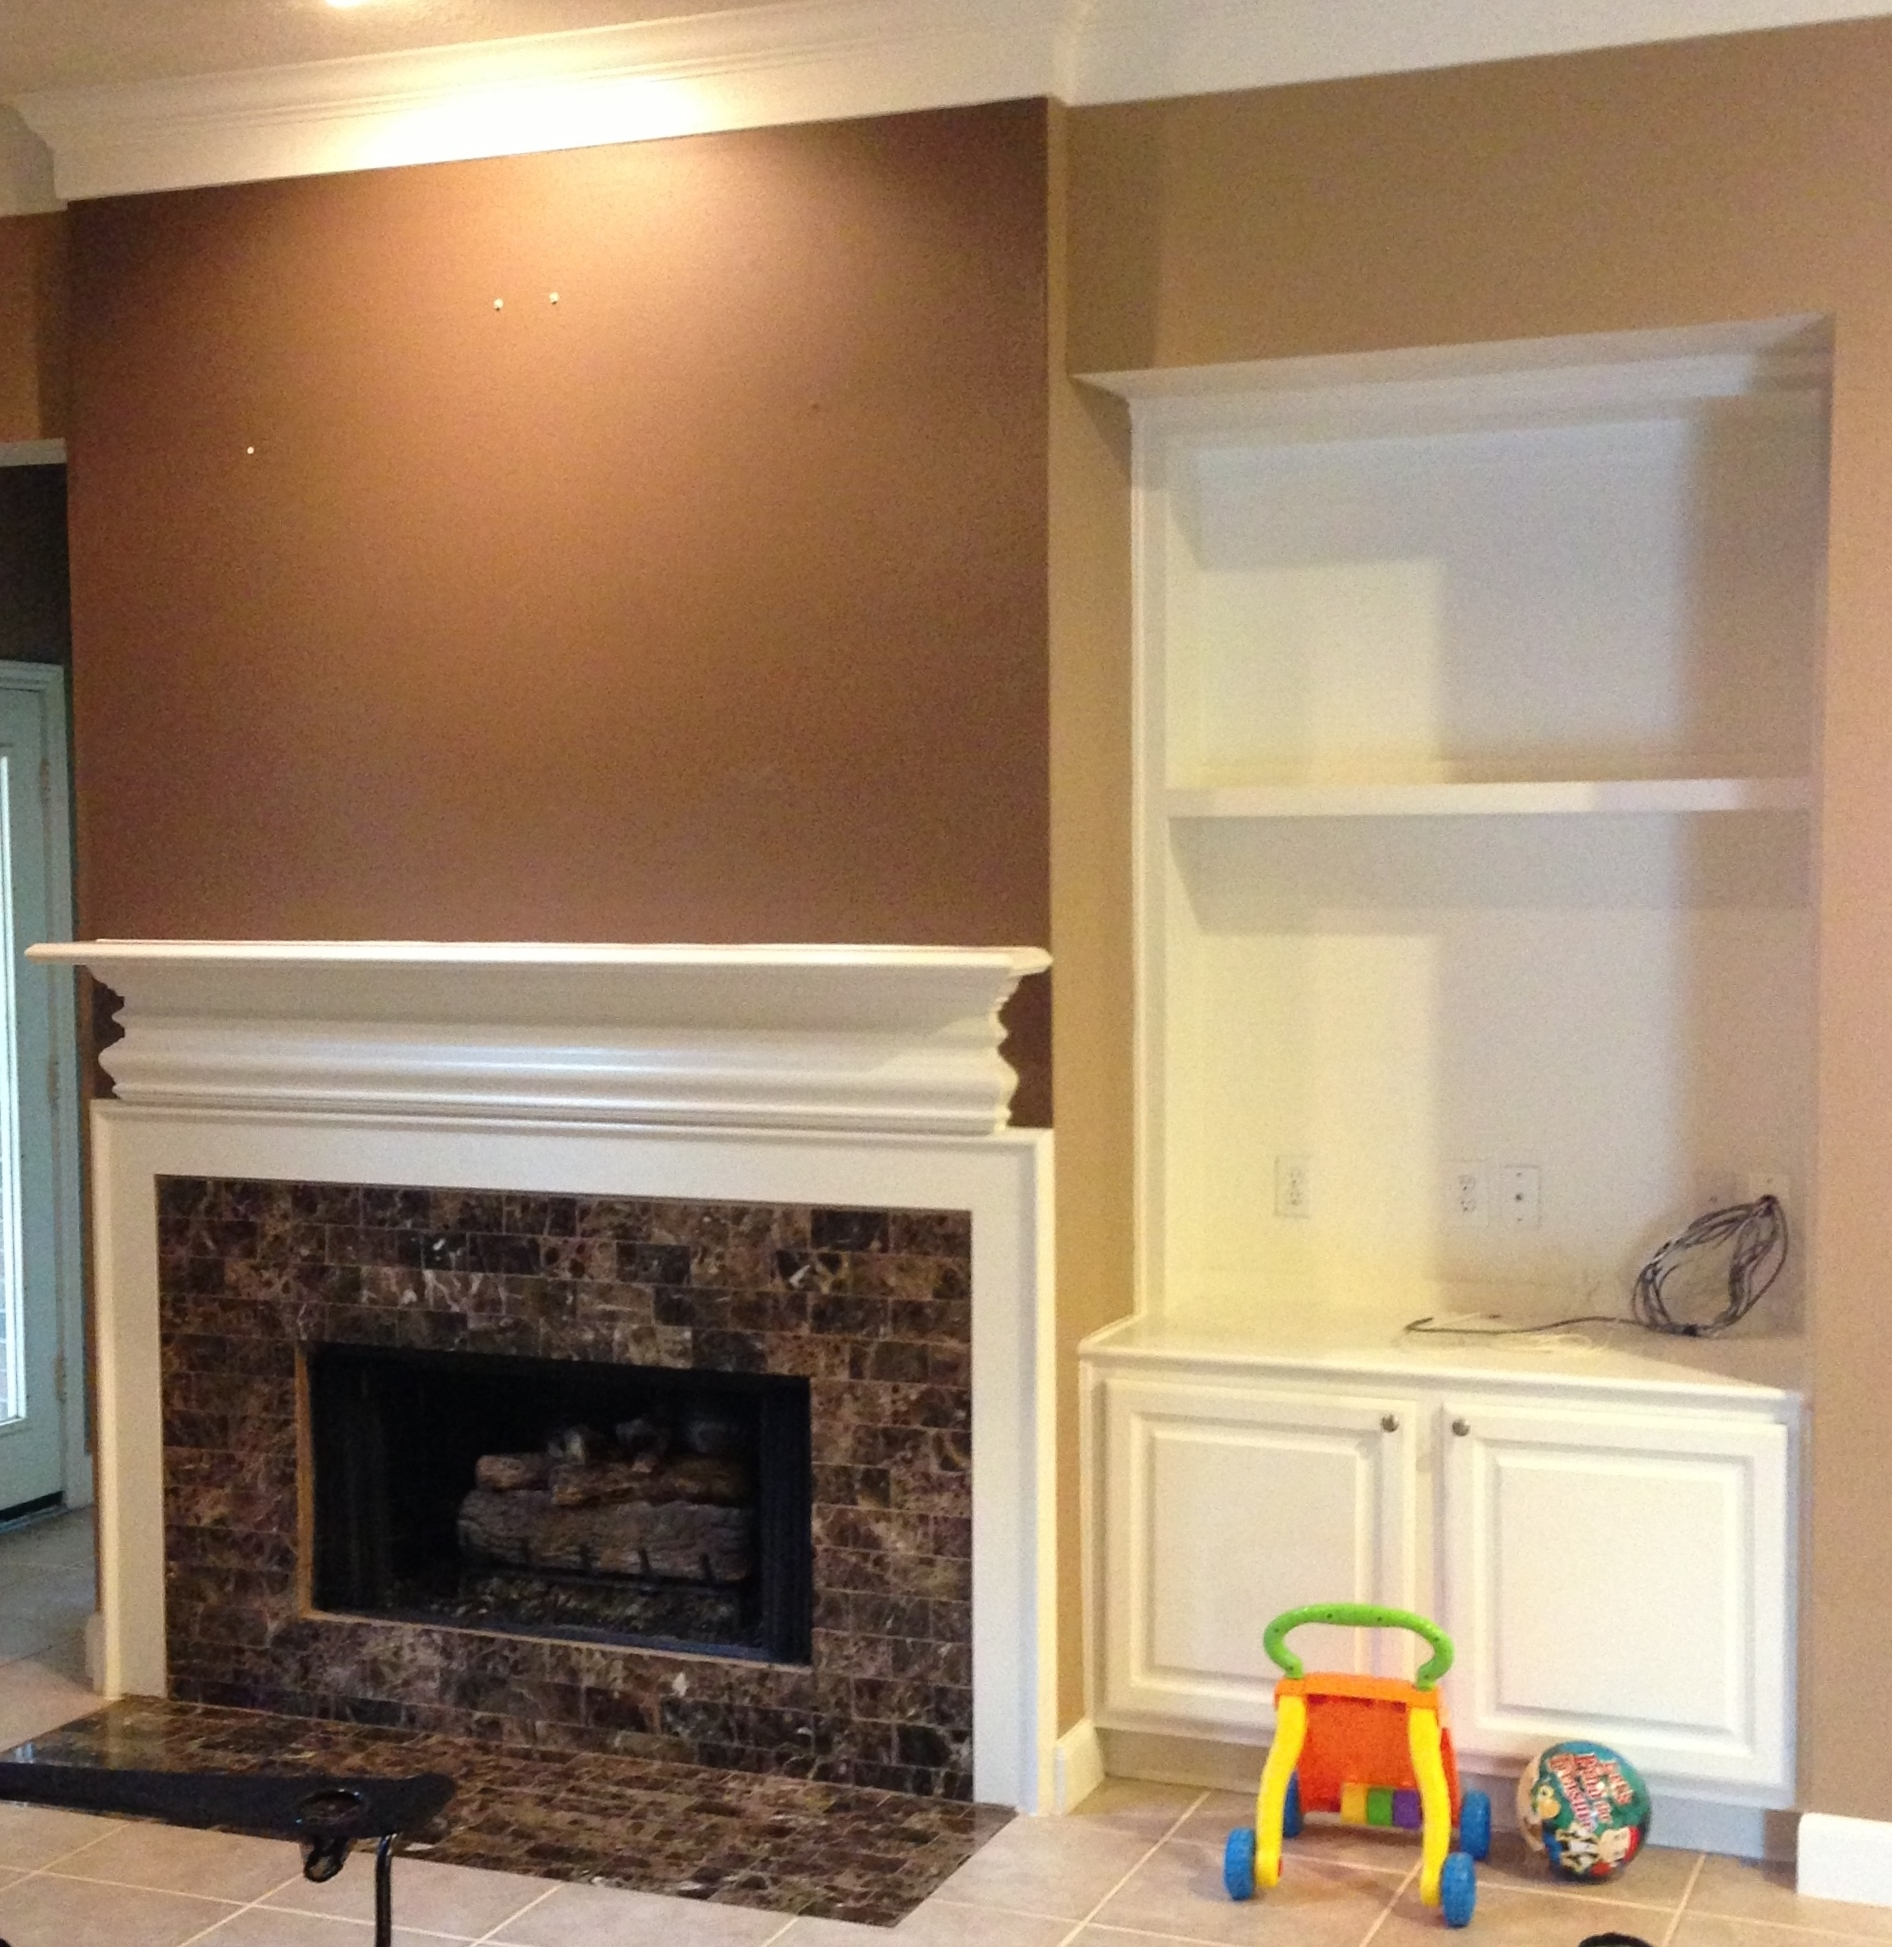 This fireplace mantel was originally designed to fit the wall, without regard to scale or how it related to the surround below.